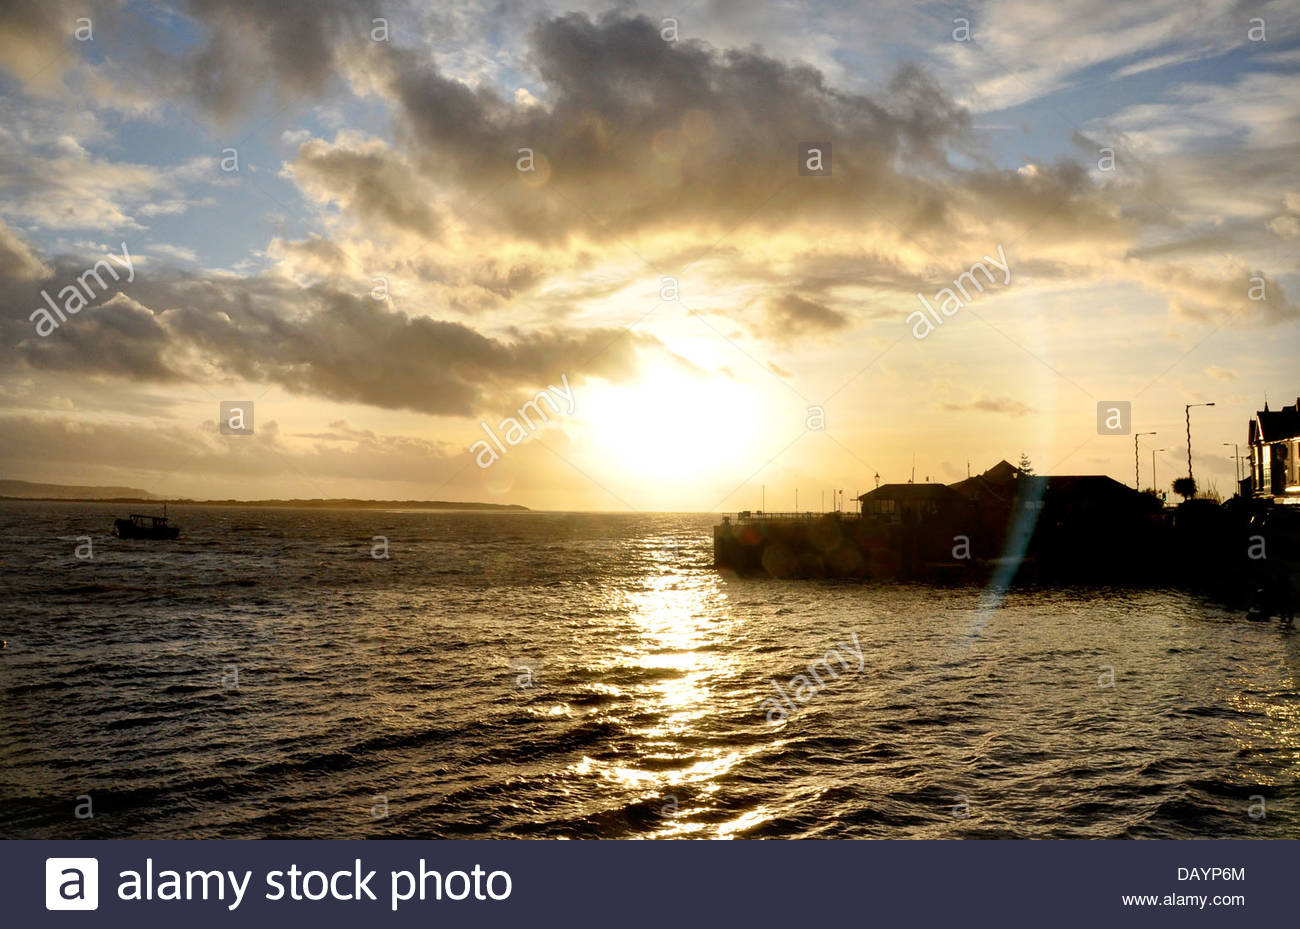 Lens flare as the sun sets at Aberdovey, Gwynedd, Wales - Stock Image